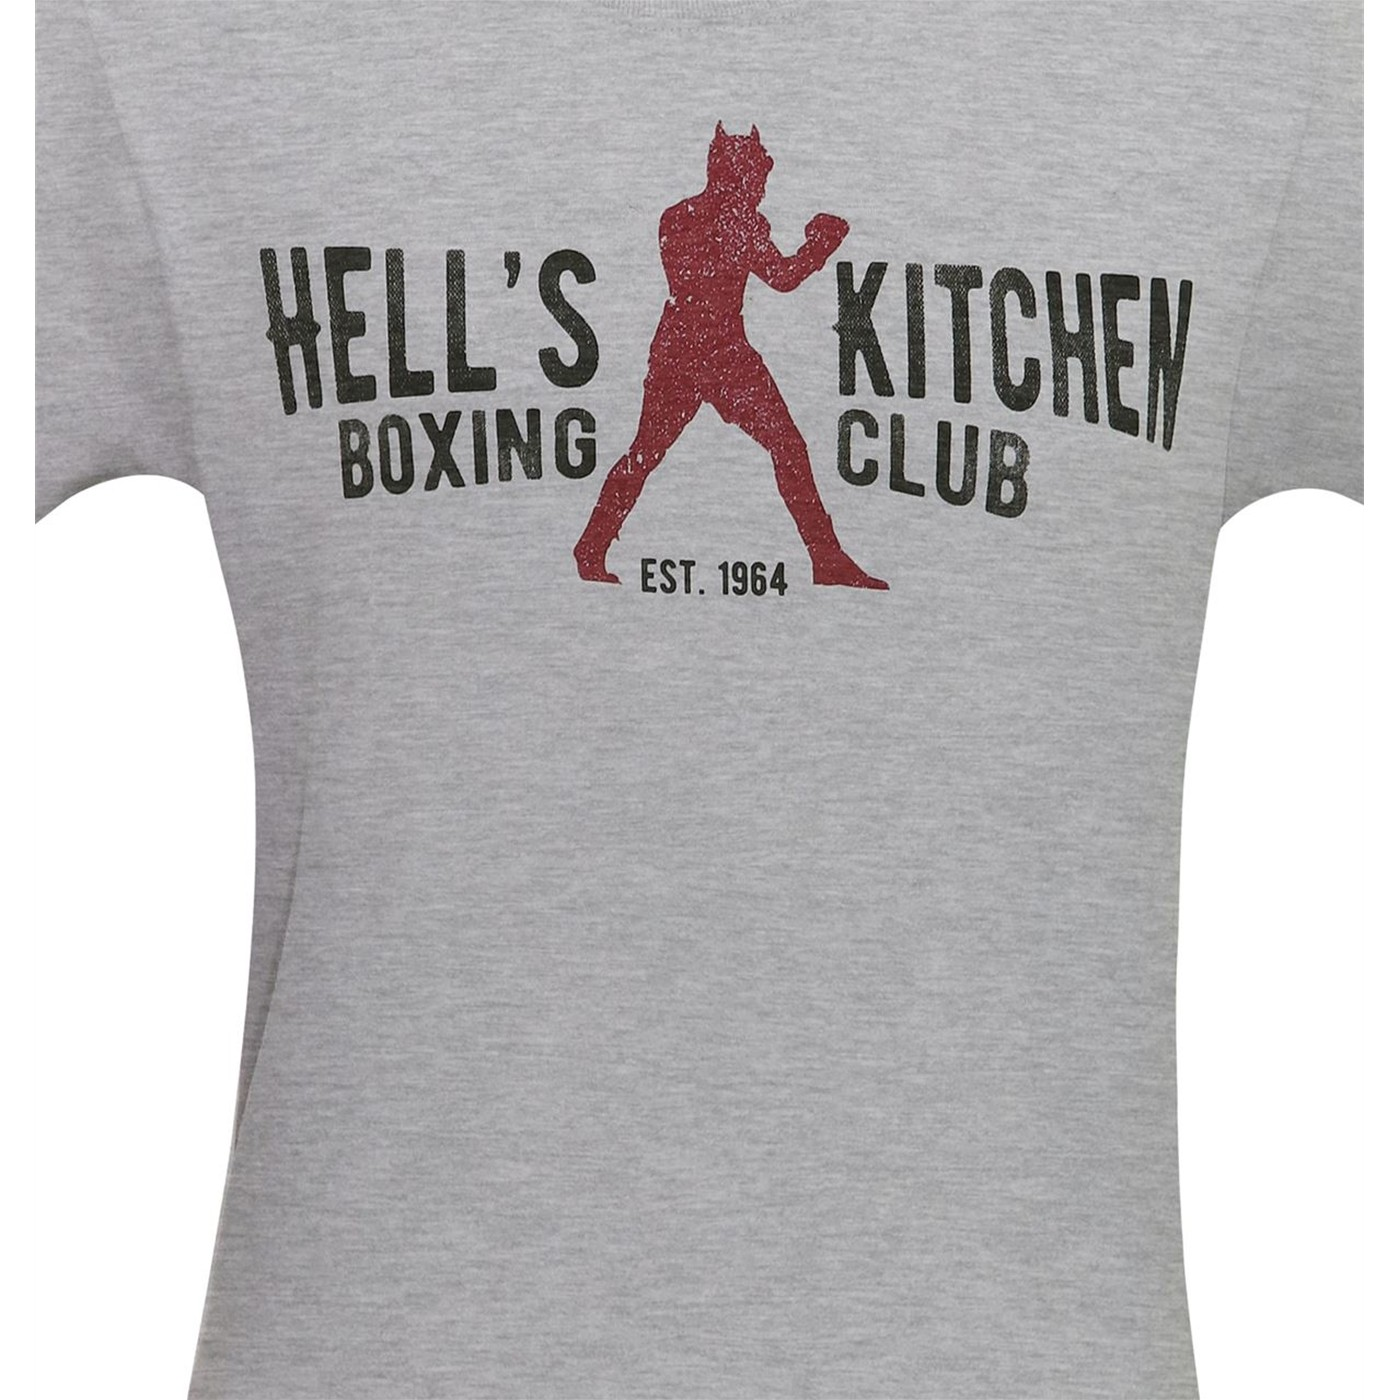 Hell's Kitchen Boxing Club Men's T-Shirt